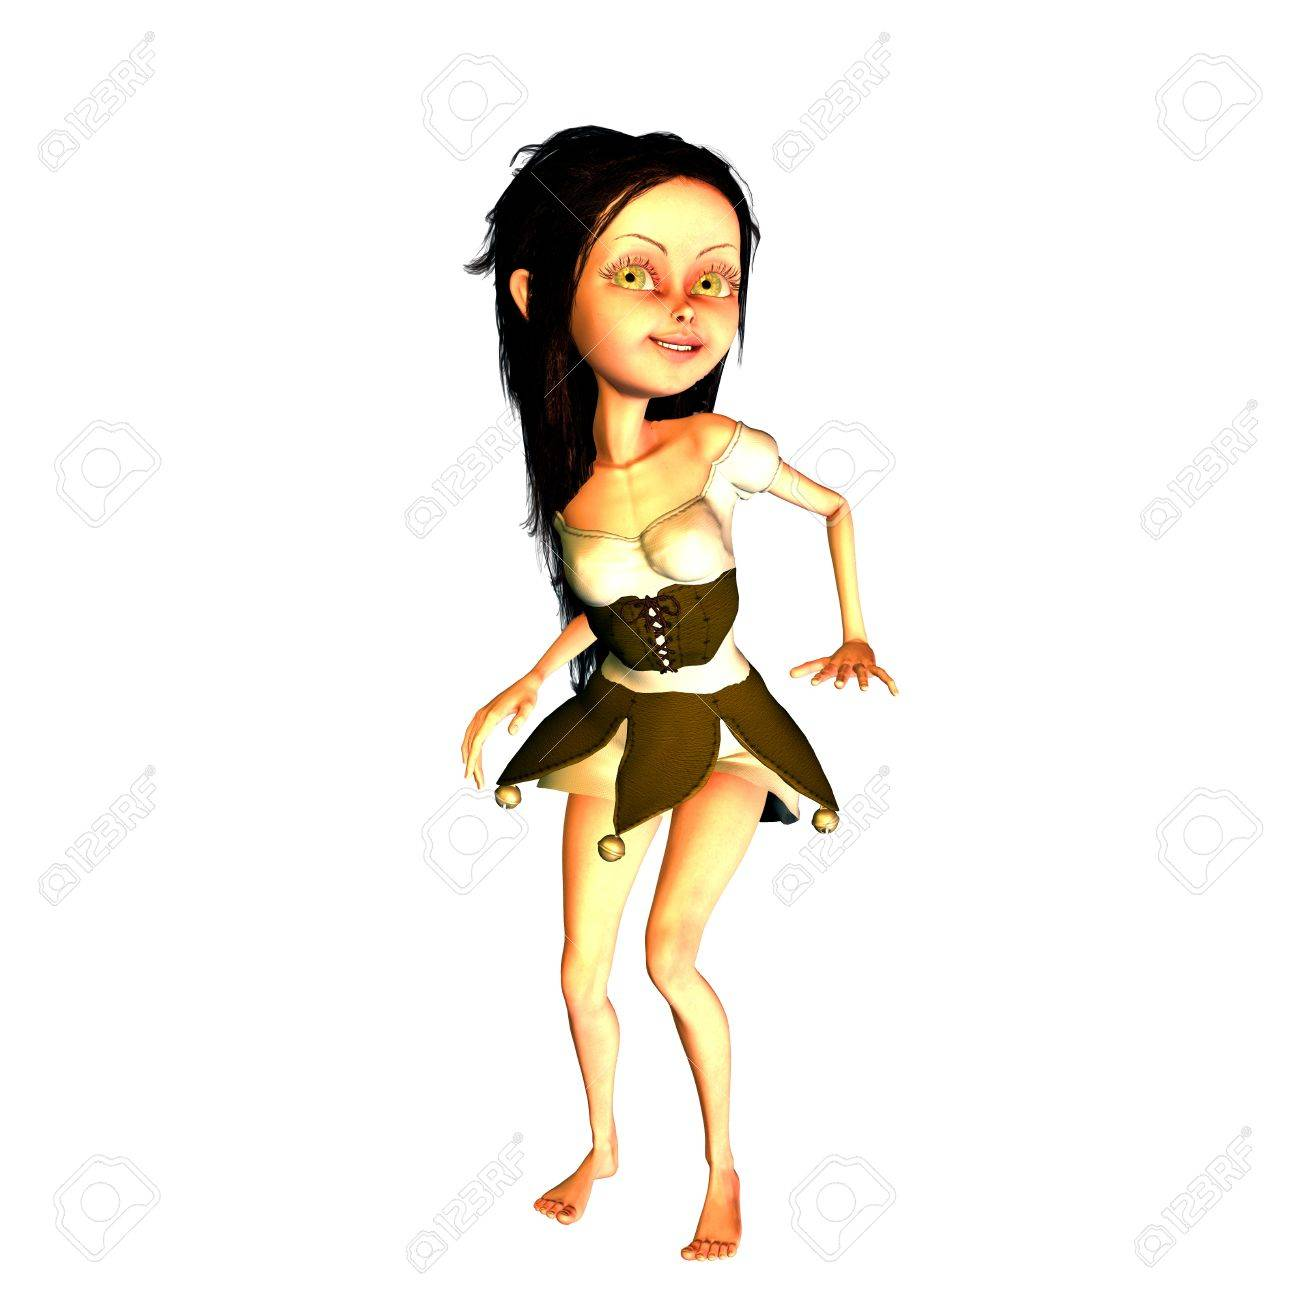 3d rendering a dancing girl as illustration Stock Photo - 10050114